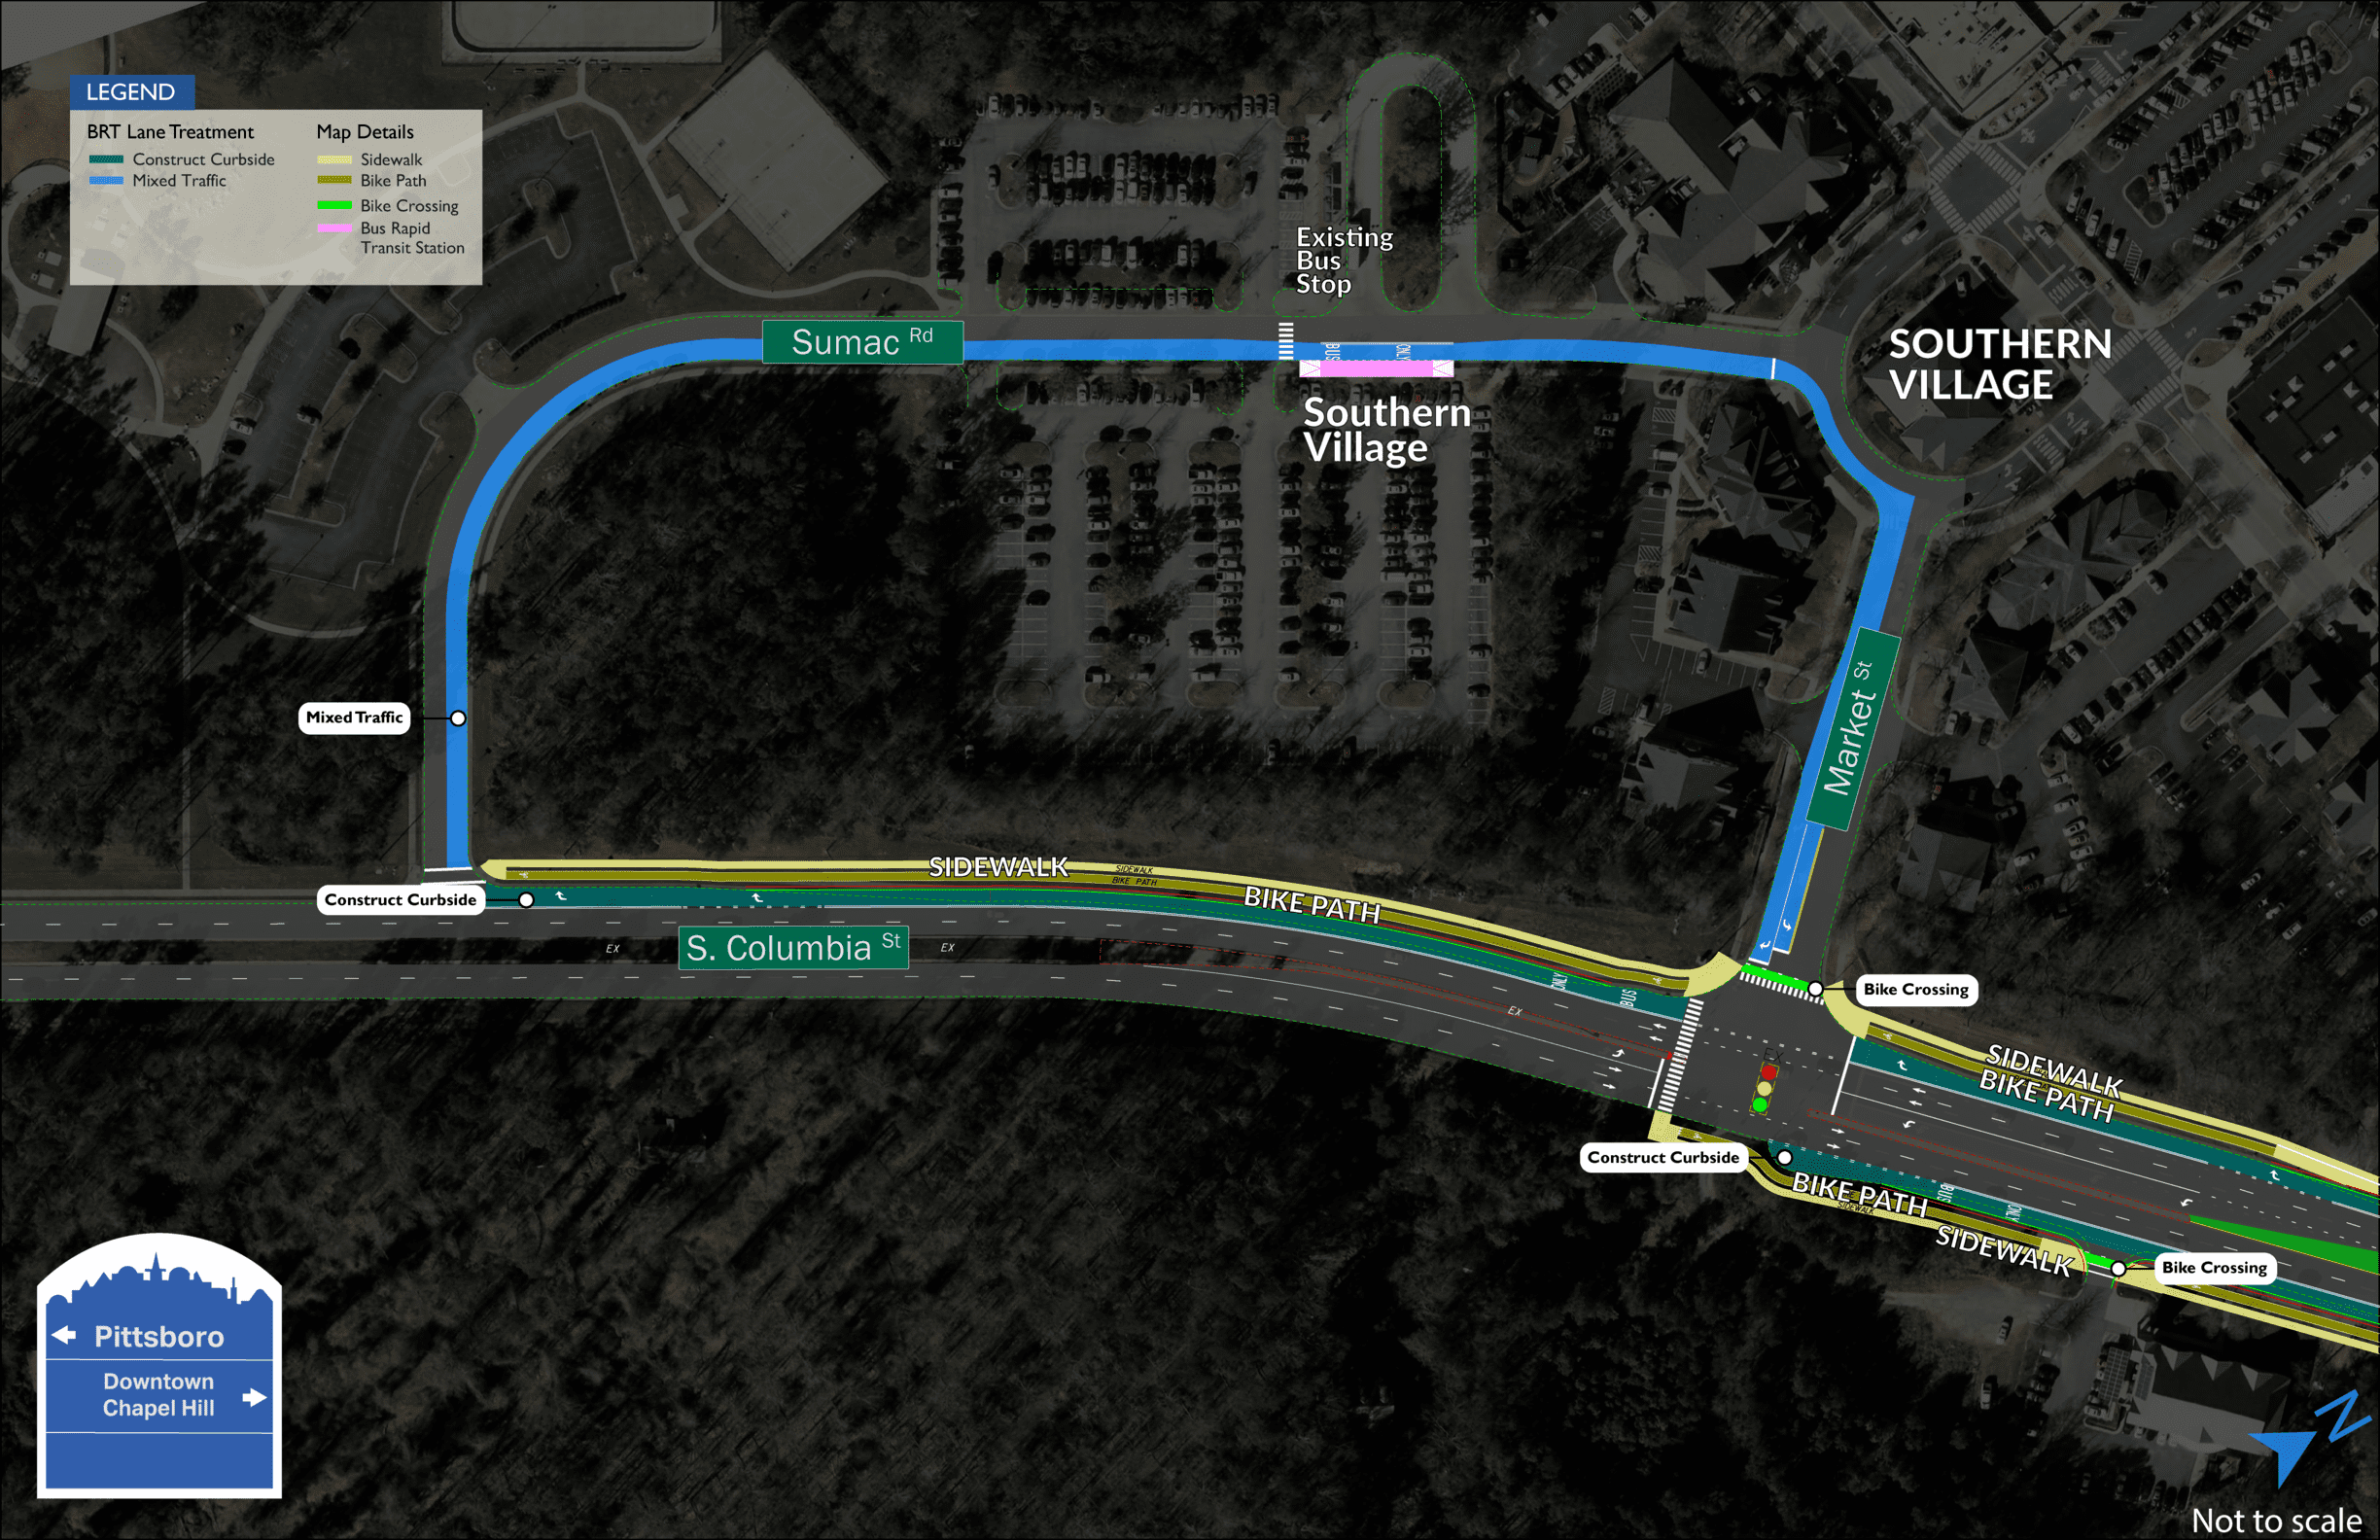 Southern Village BRT station map showing one station located on Sumac Road next to Southern Village.